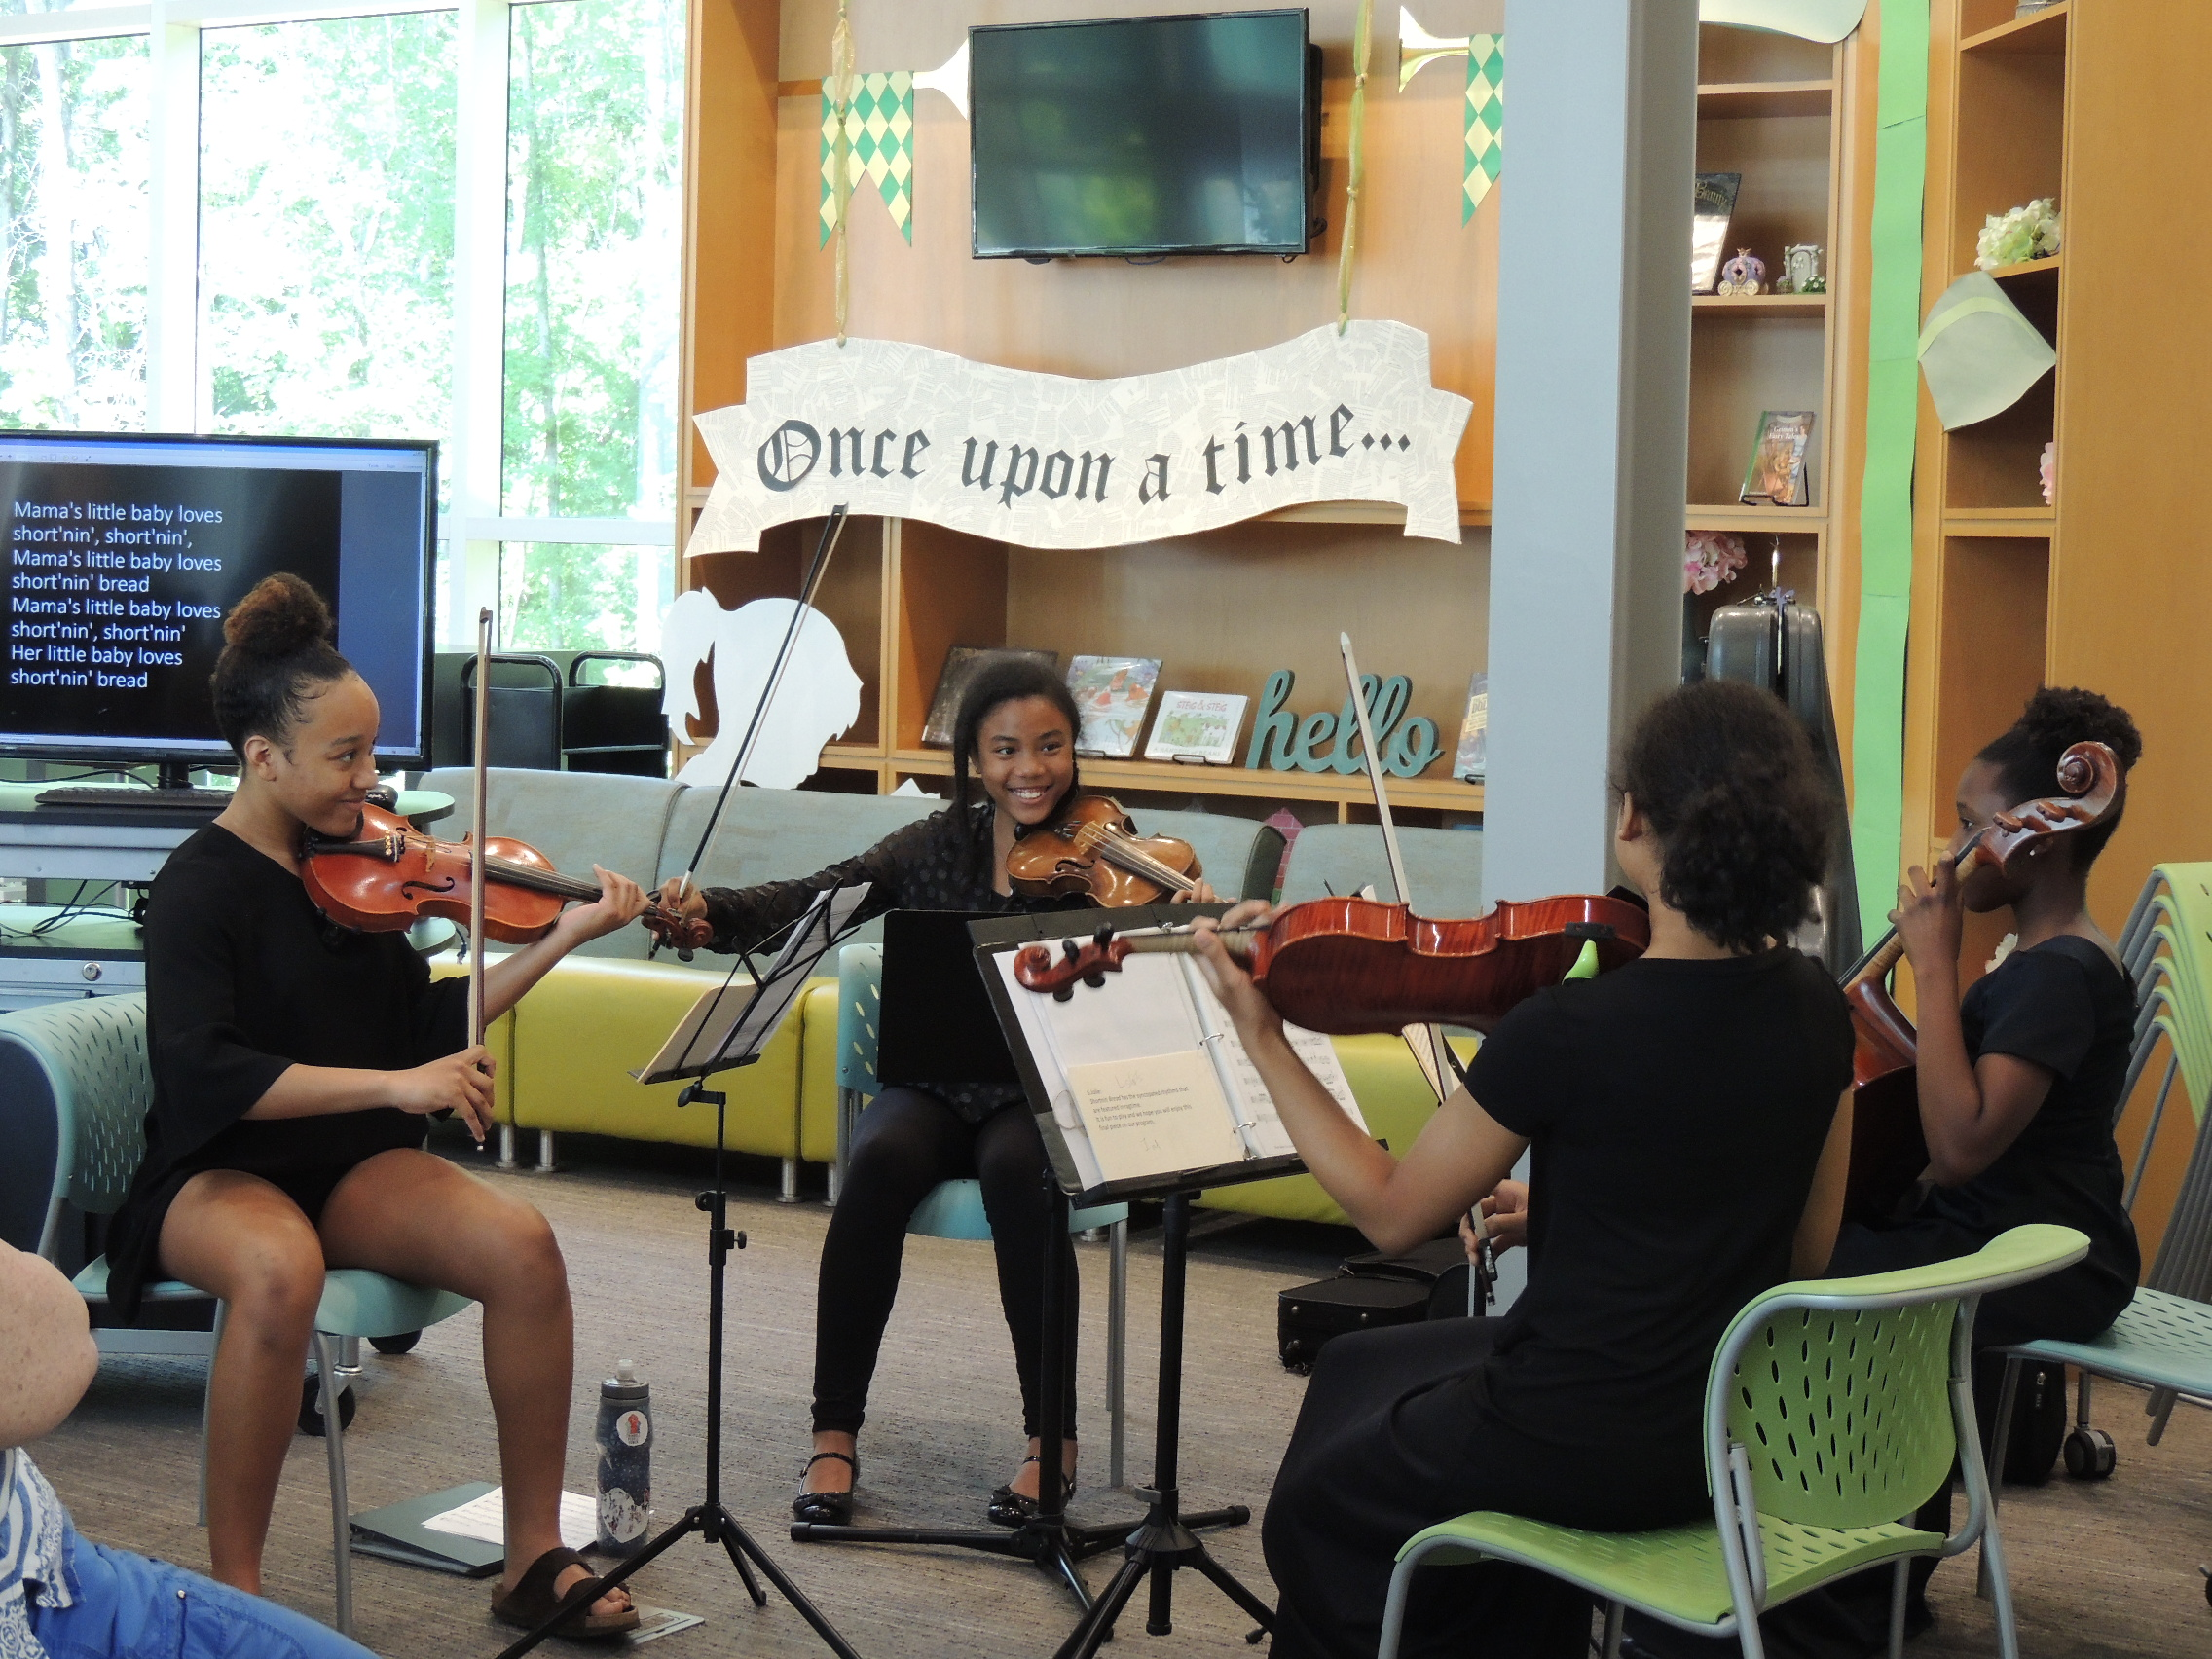 The United Strings of Color perform at the library